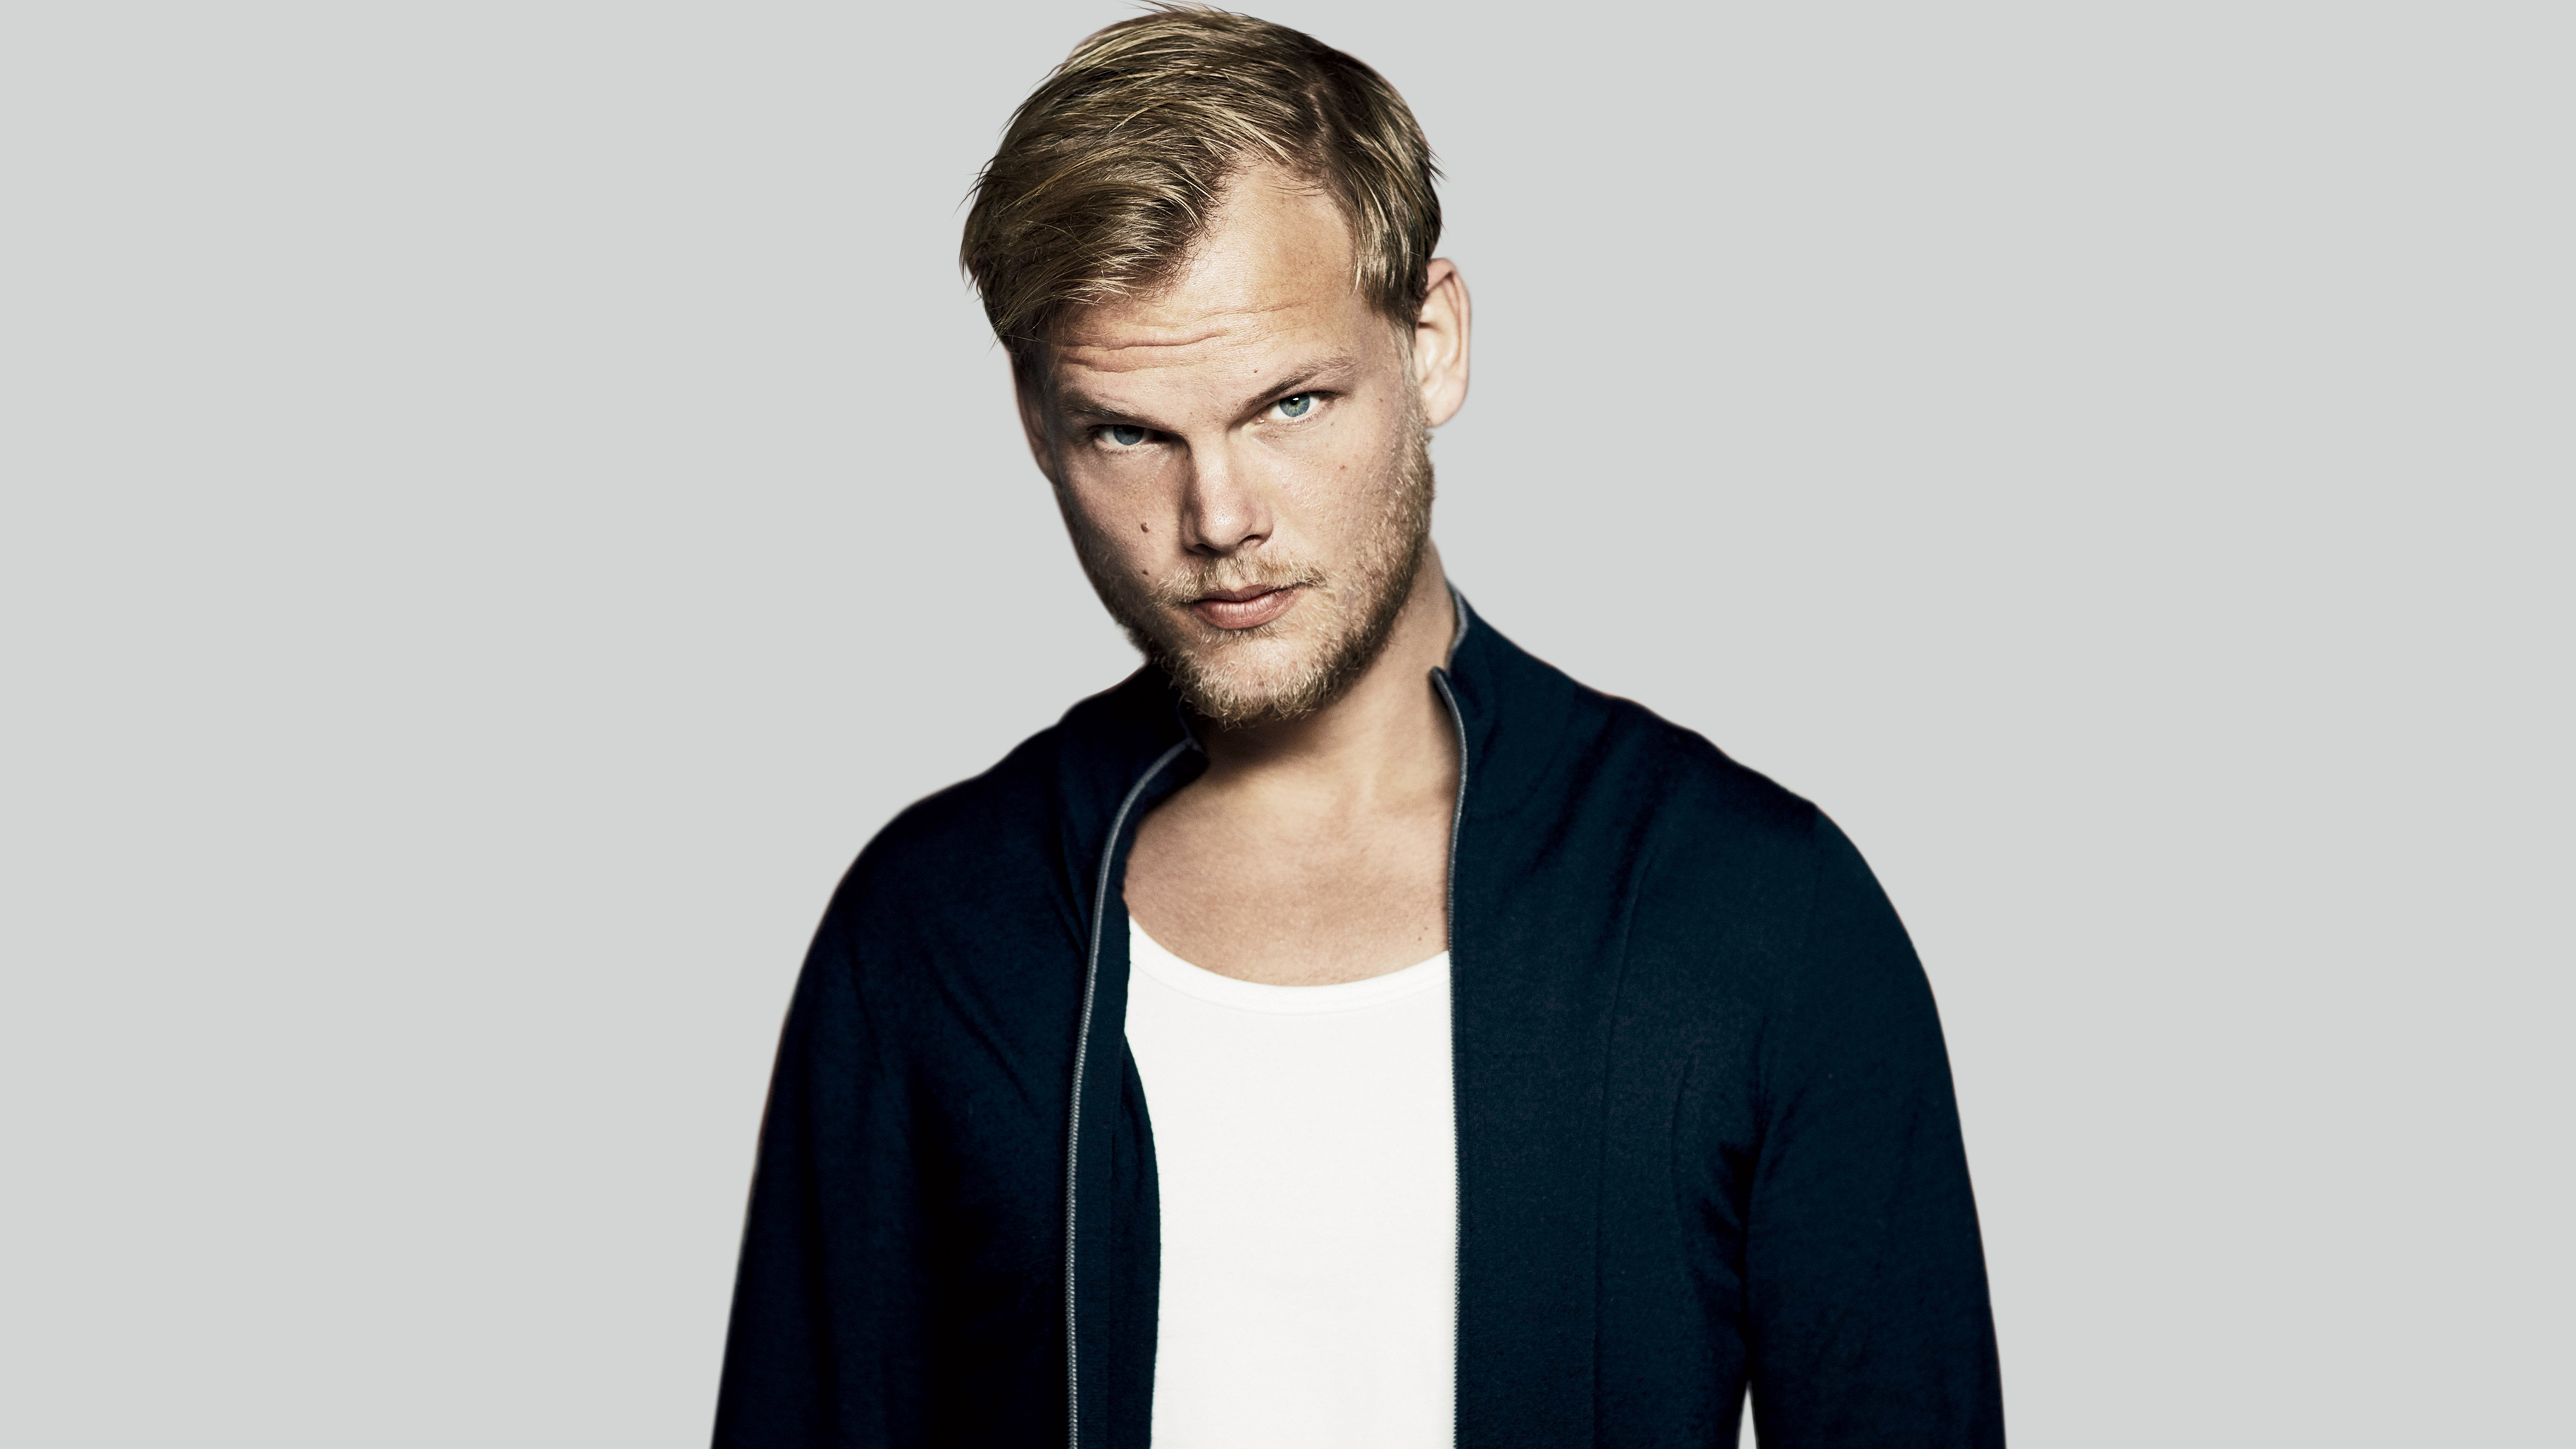 Official Avicii Biography To Be Published 2020